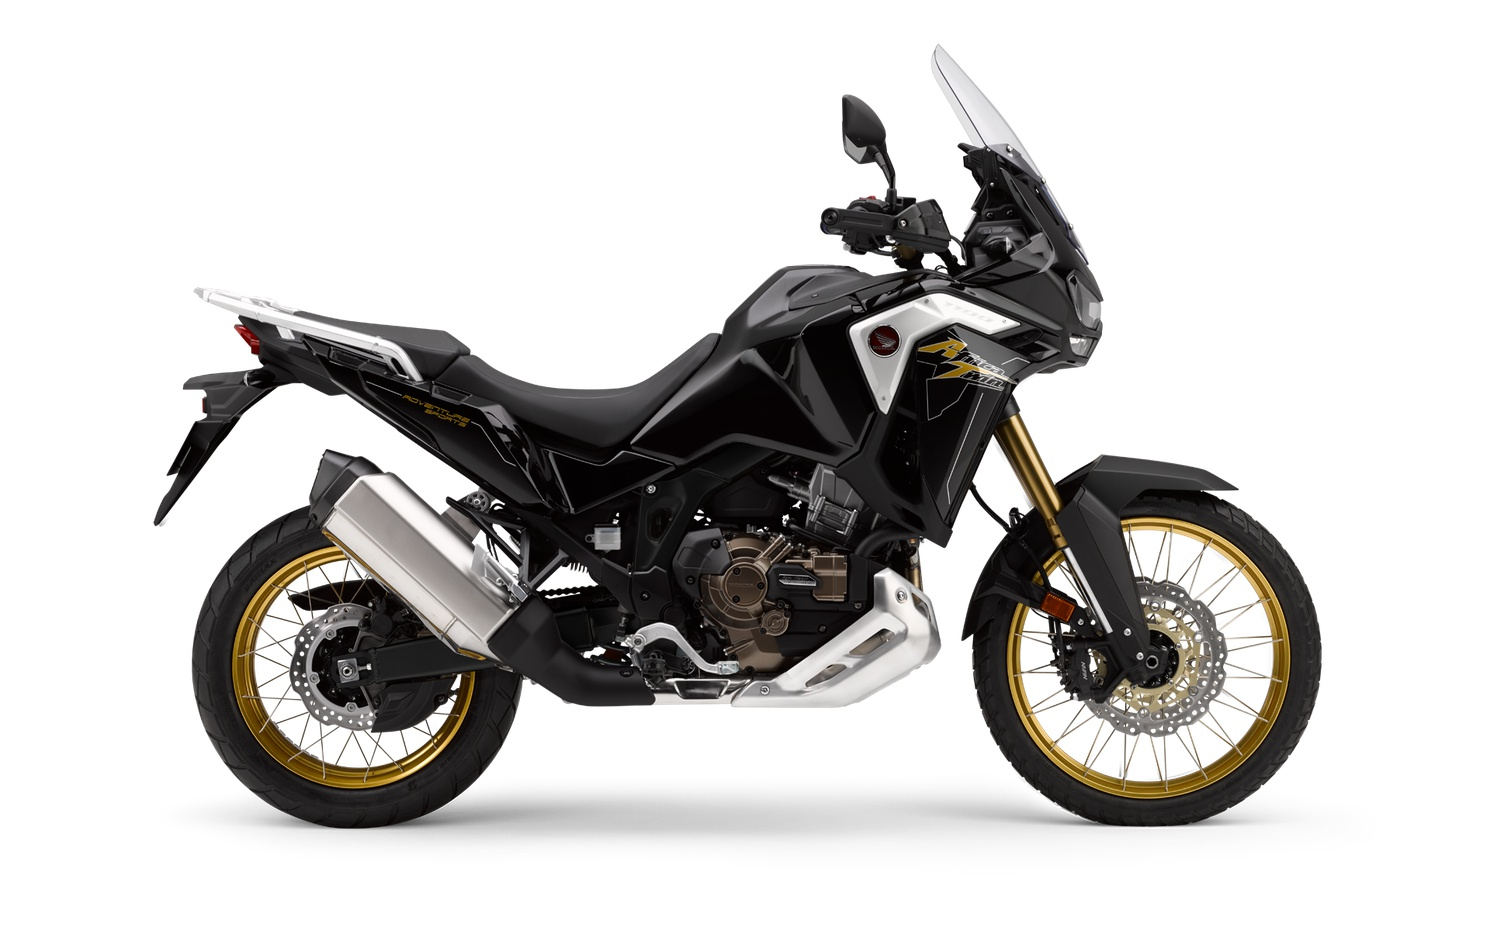 Honda Africa Twin Adventure Sports DCT  Noir Obscur Métallique 2020